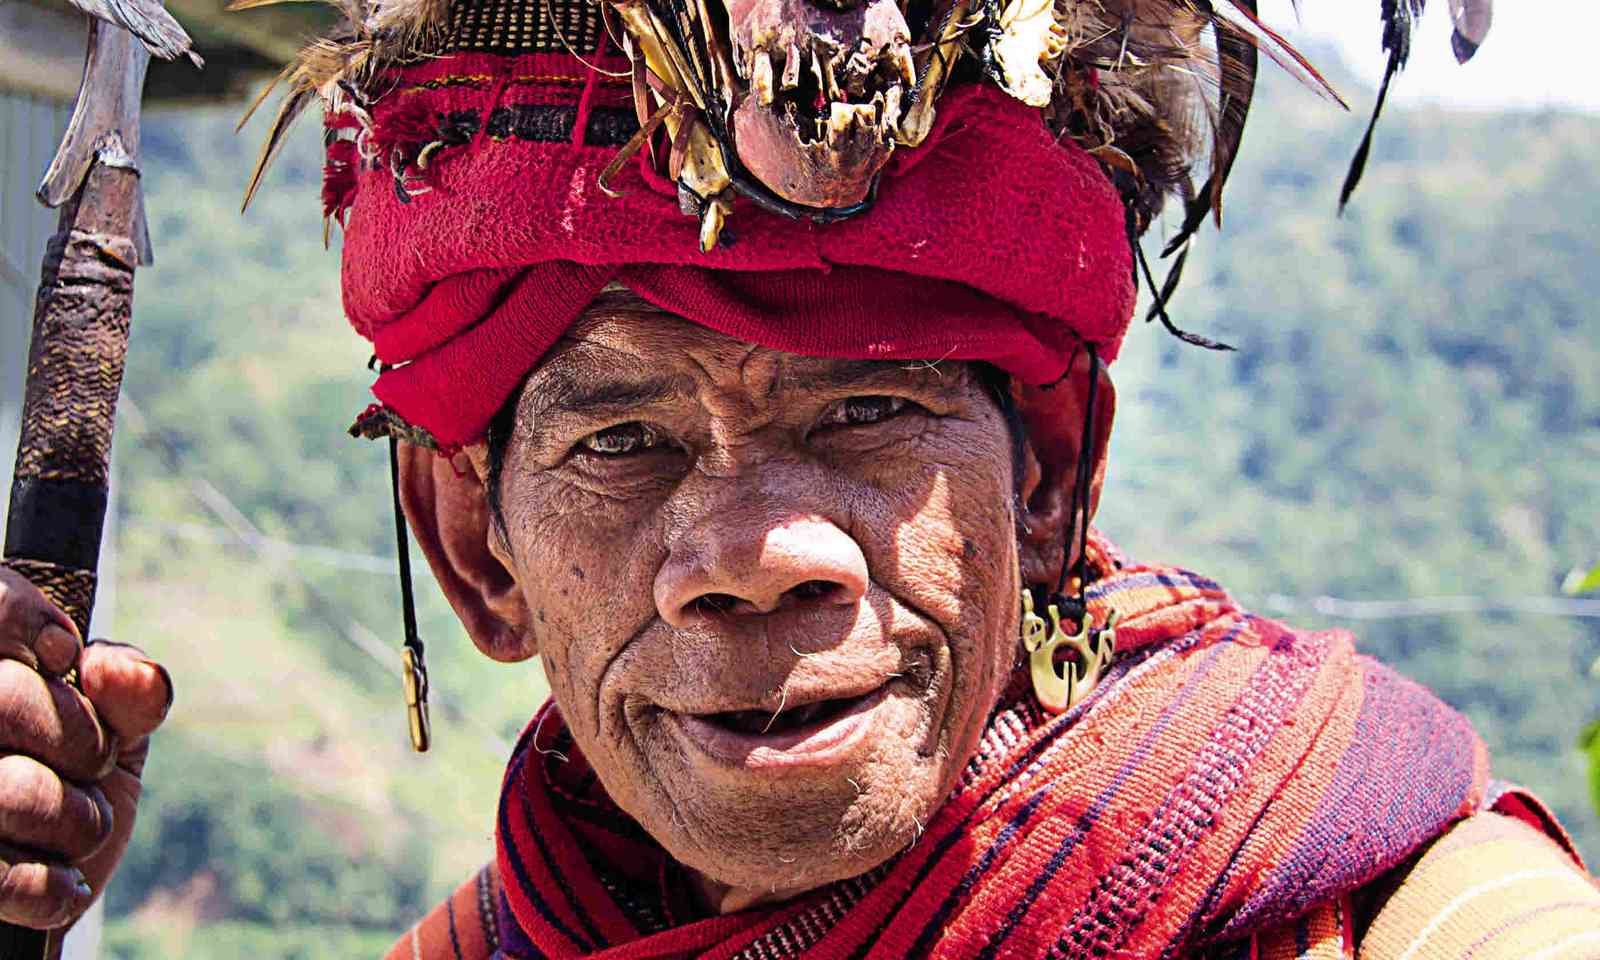 An Ifugao man in traditional dress (Nick Boulos)